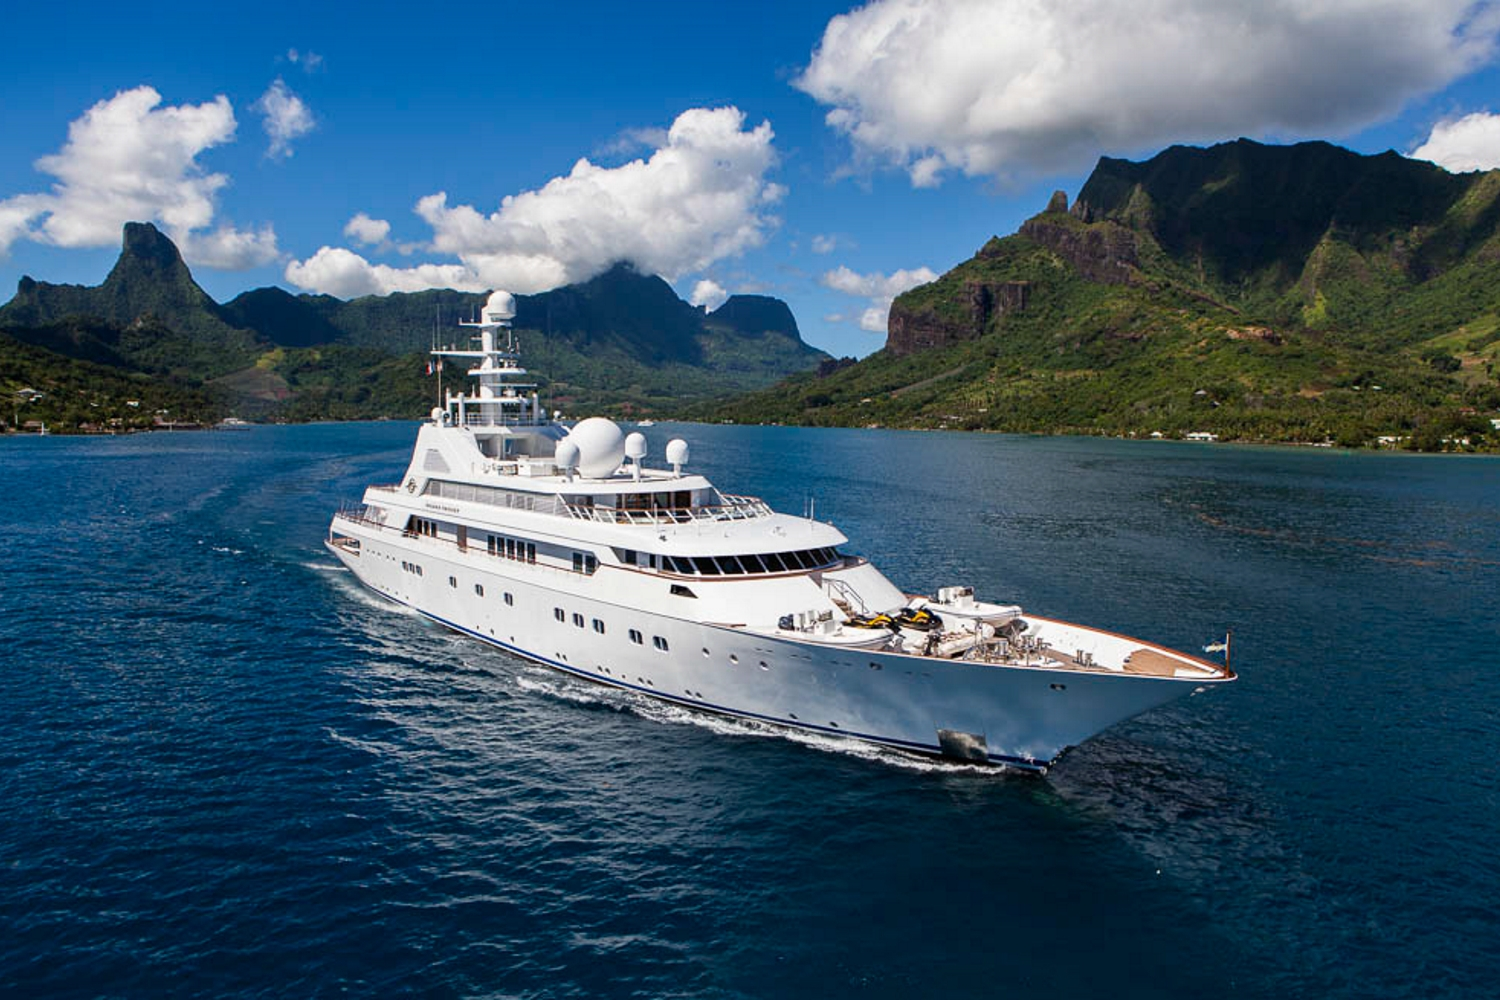 Grand Ocean cruising in the South Pacific